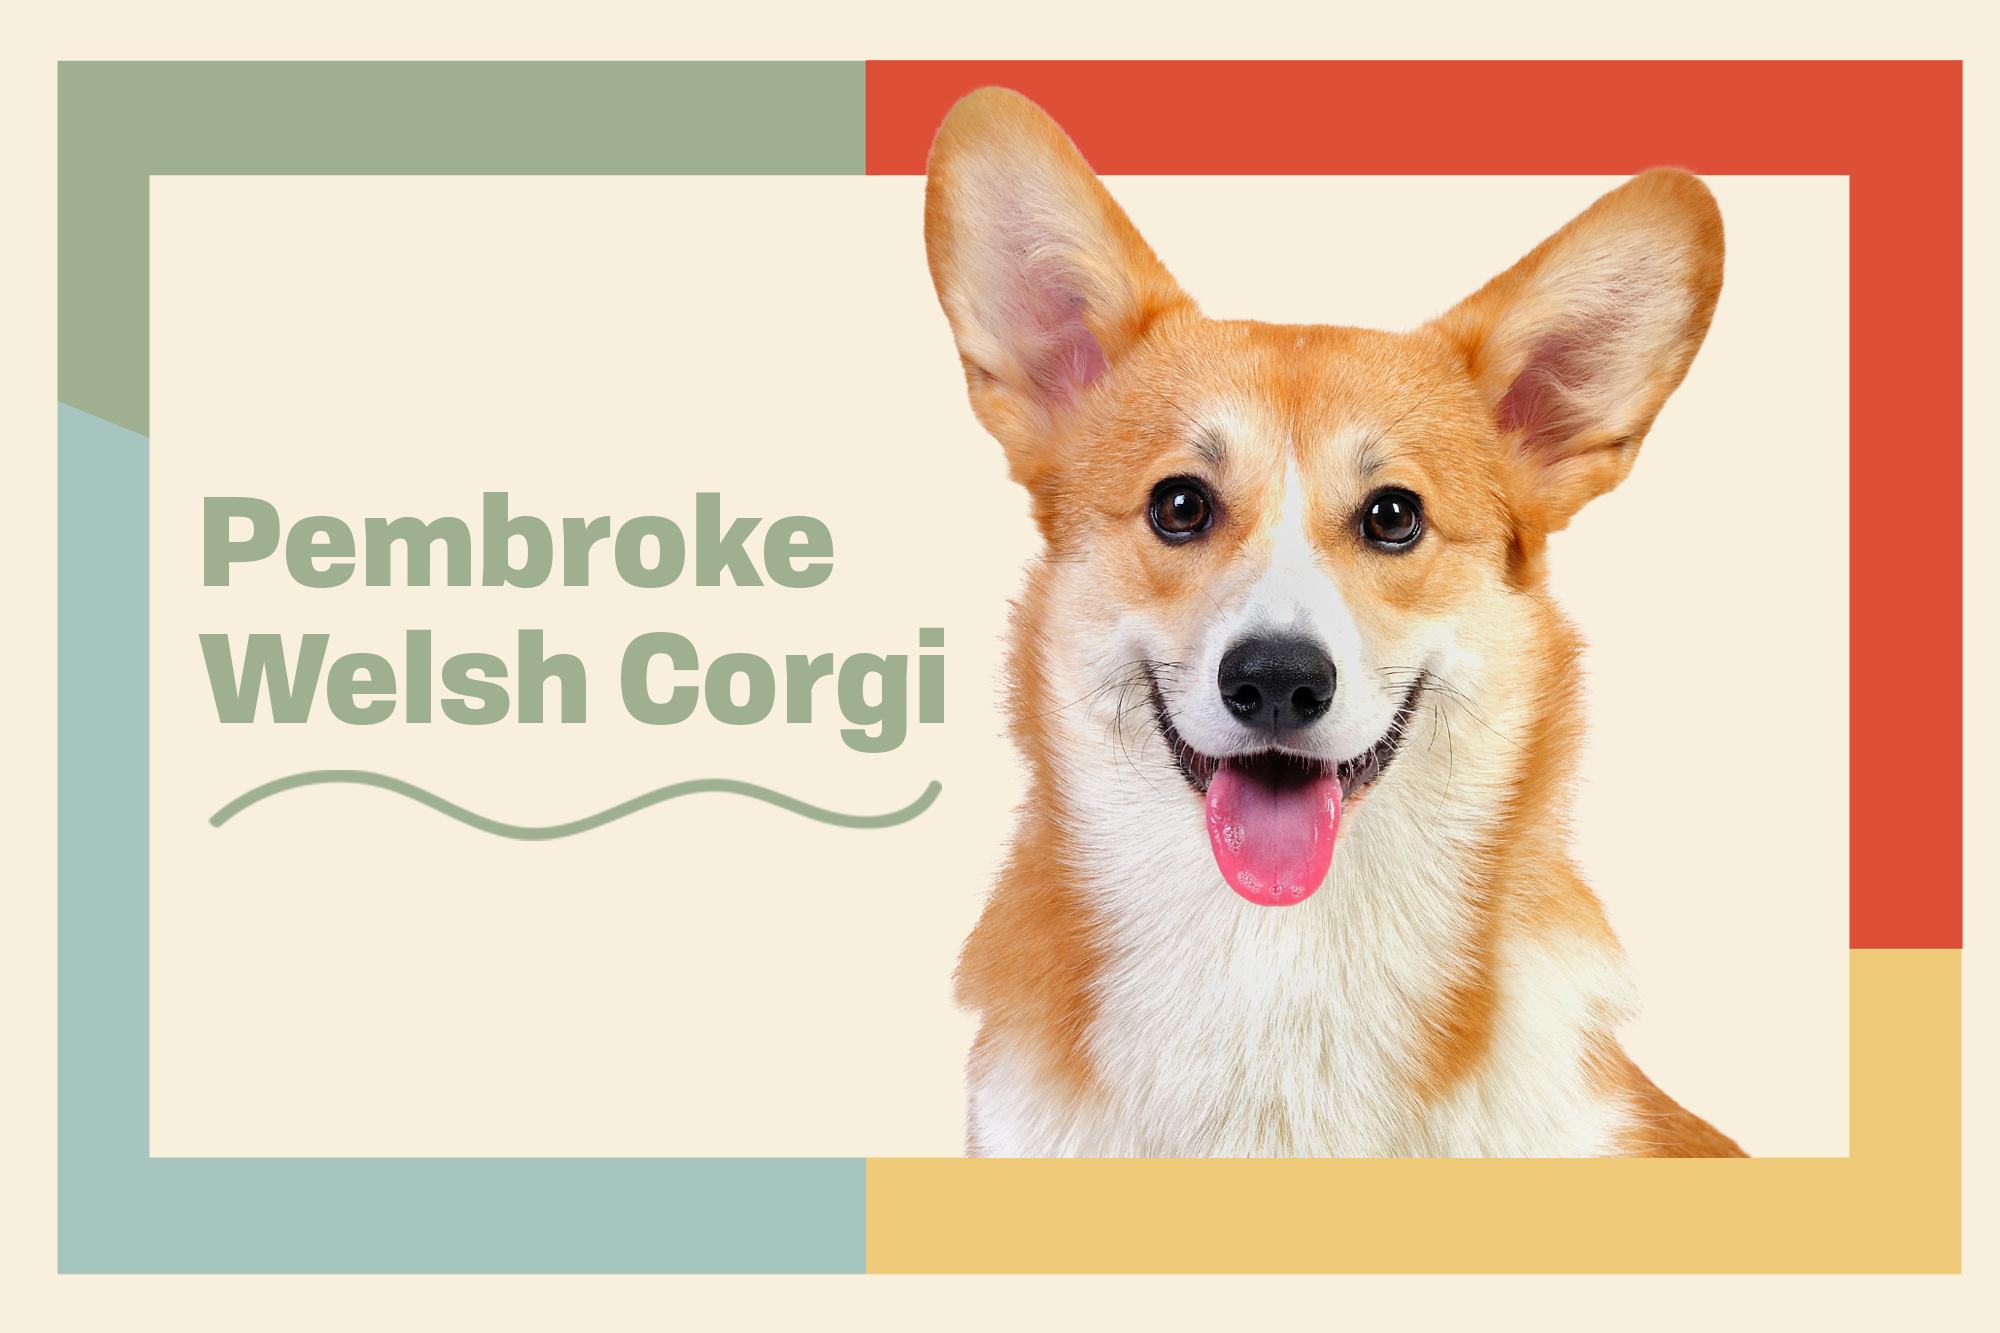 Pembroke Welsh Corgi Breed Photo